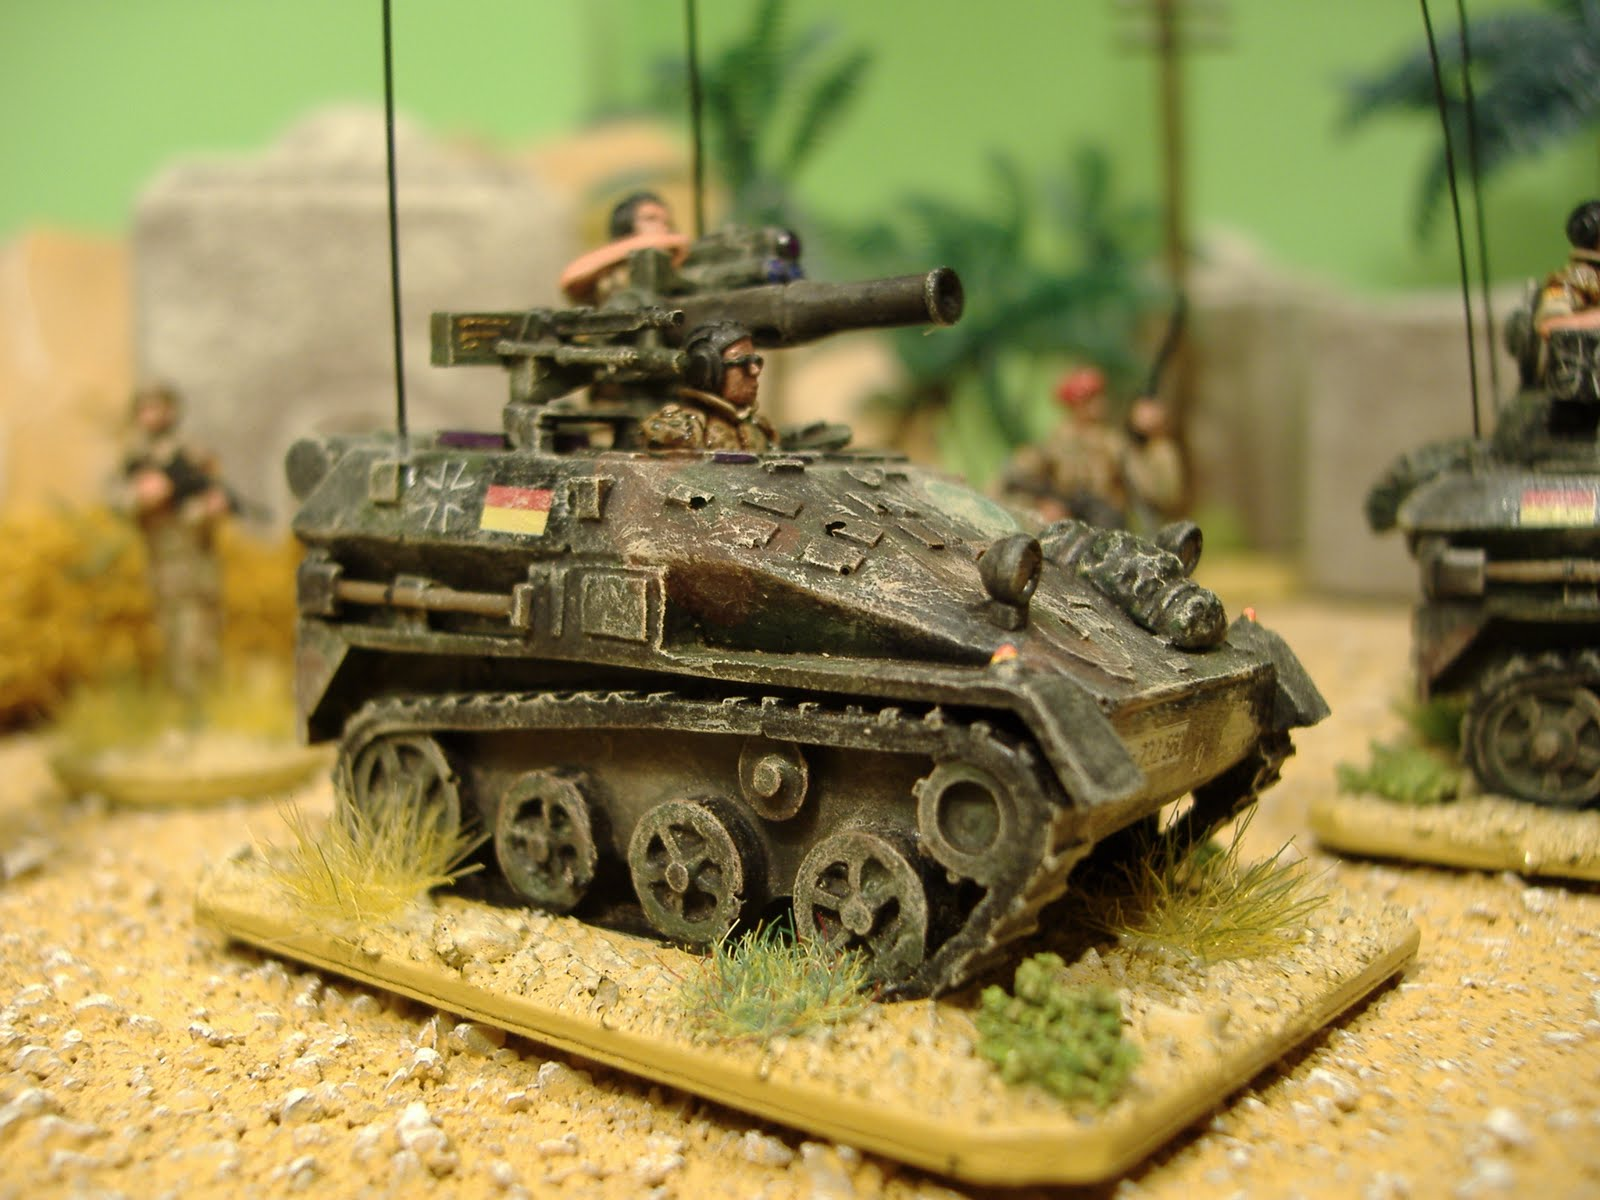 SmallScaleOperations - Wargaming Moderns, Historical and Sci